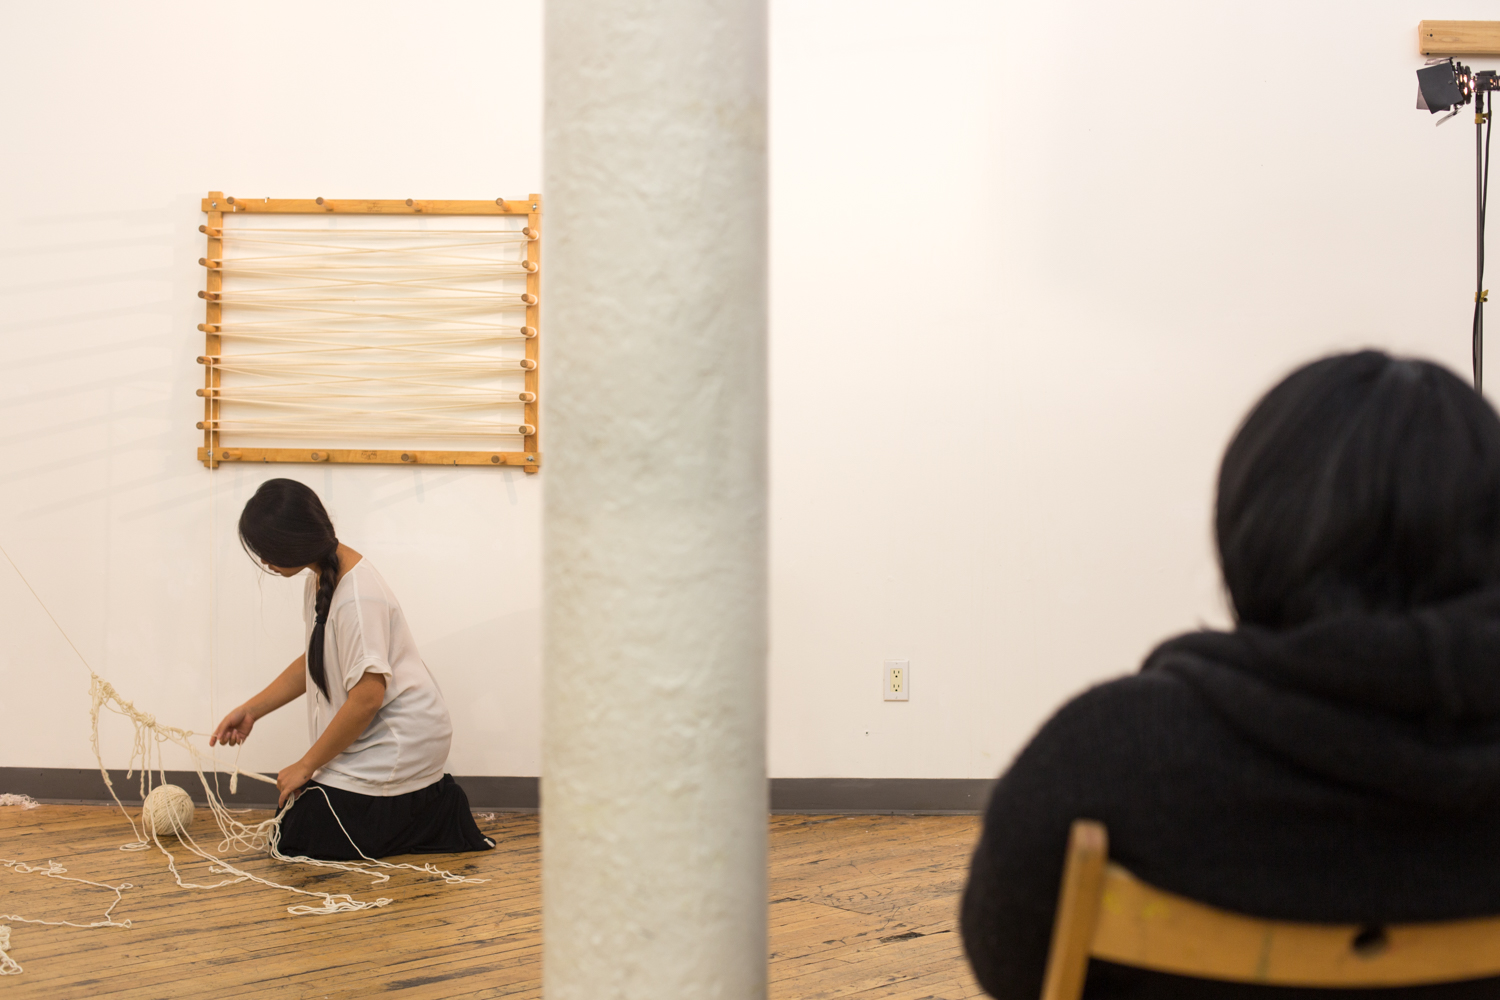 The image is split in the middle by a pole. On the left side is the artist kneels on the floor untangling and the right side is of an audience member.